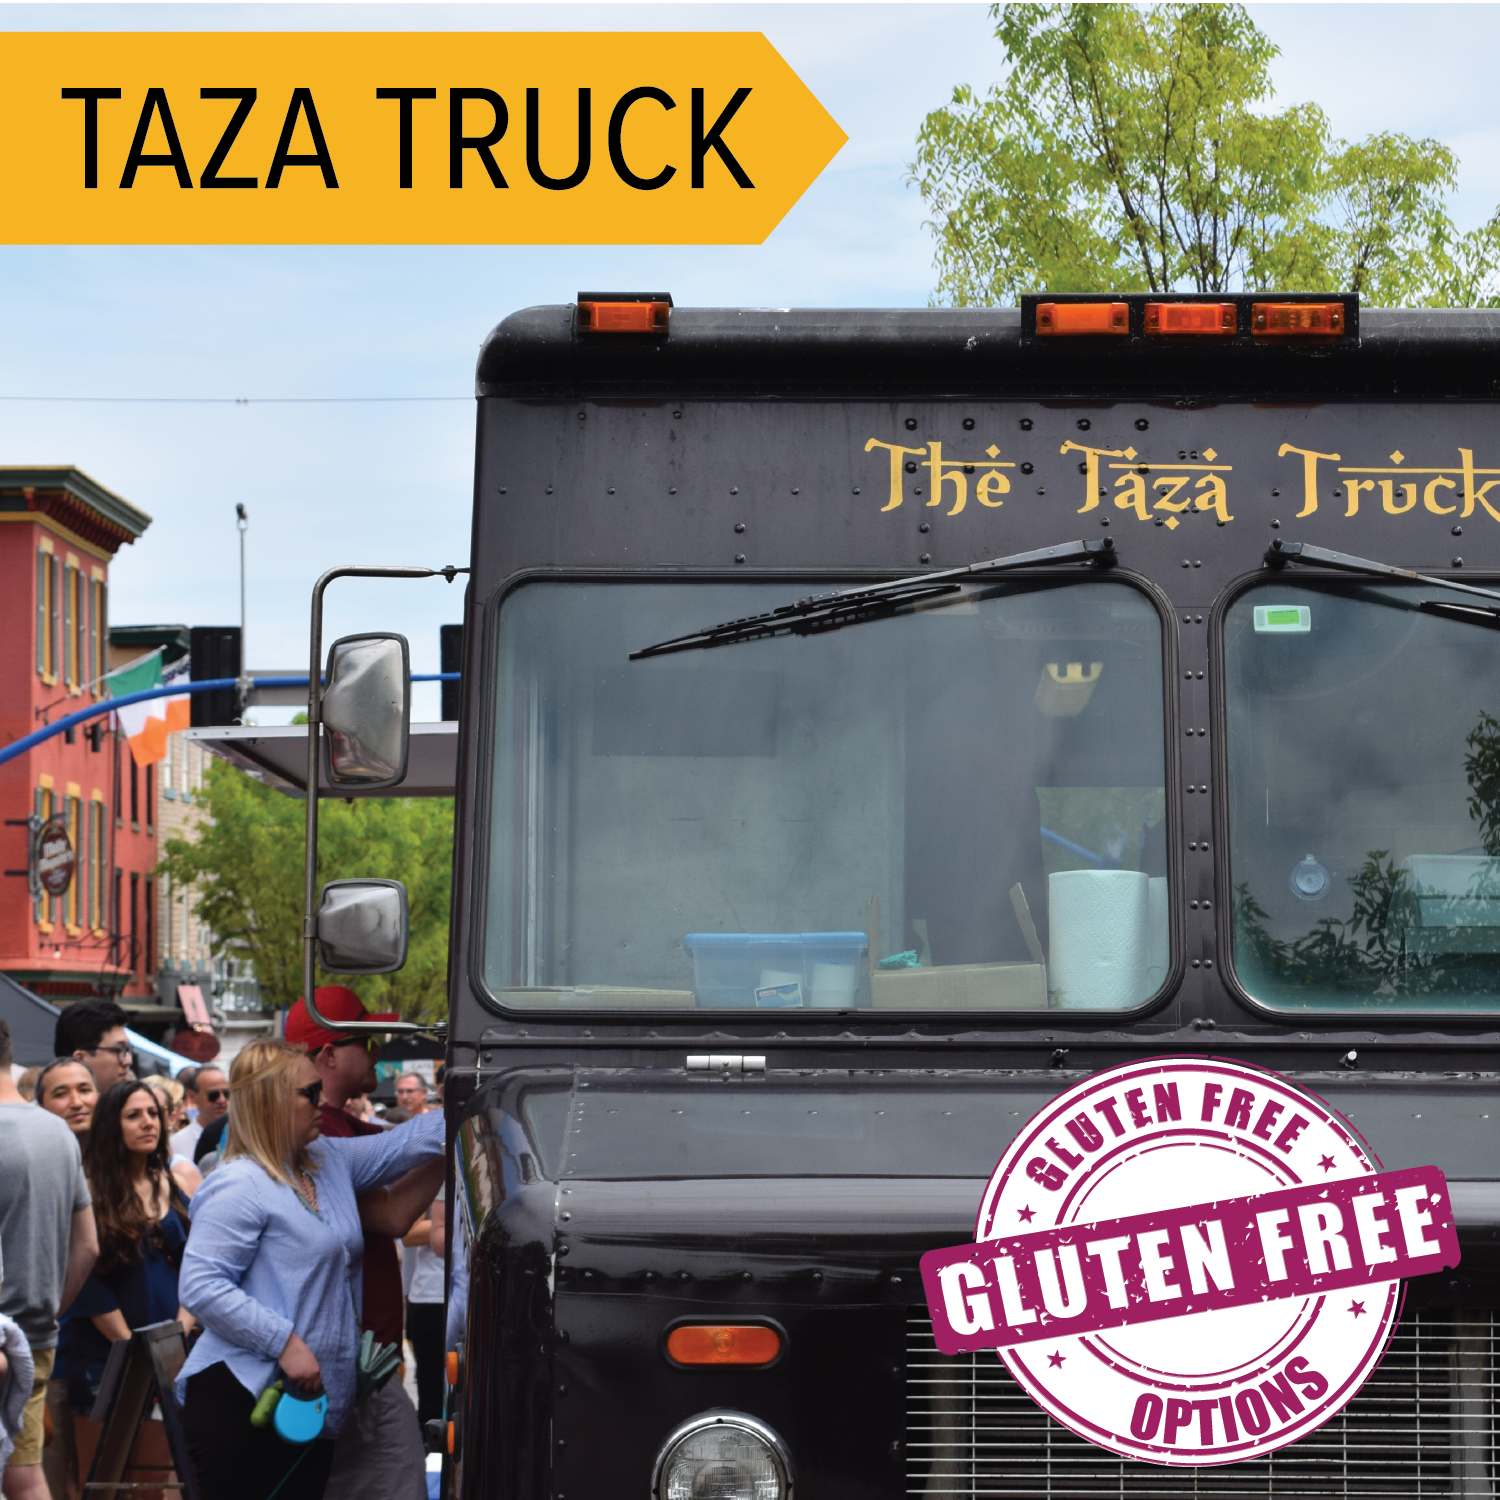 The Taza Truck   Enjoy some Egyptian cuisine on the go! Offering items like hummus, rice bowls, and fresh pita wraps!